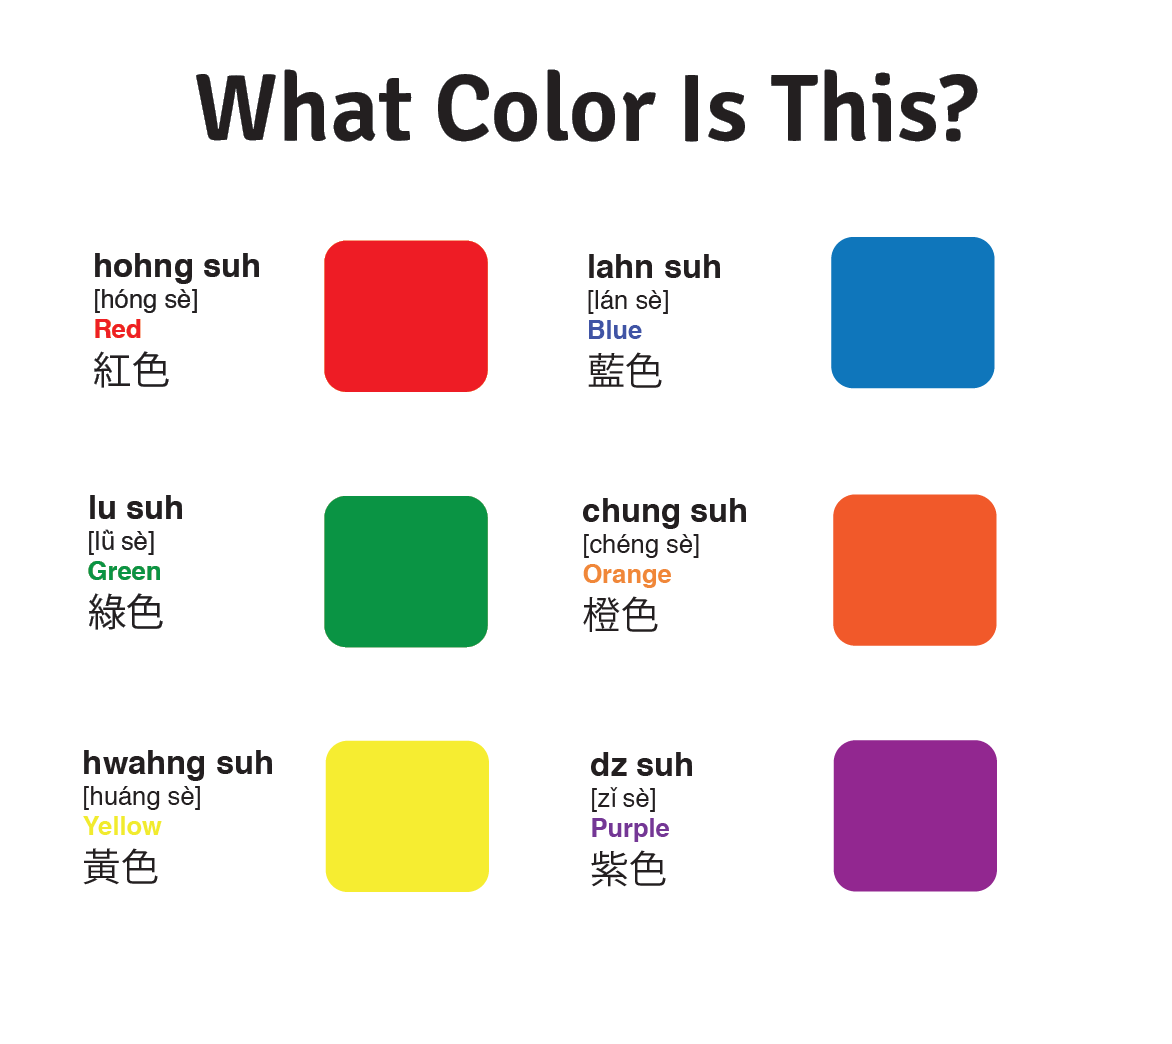 What Color Is This Feature Image